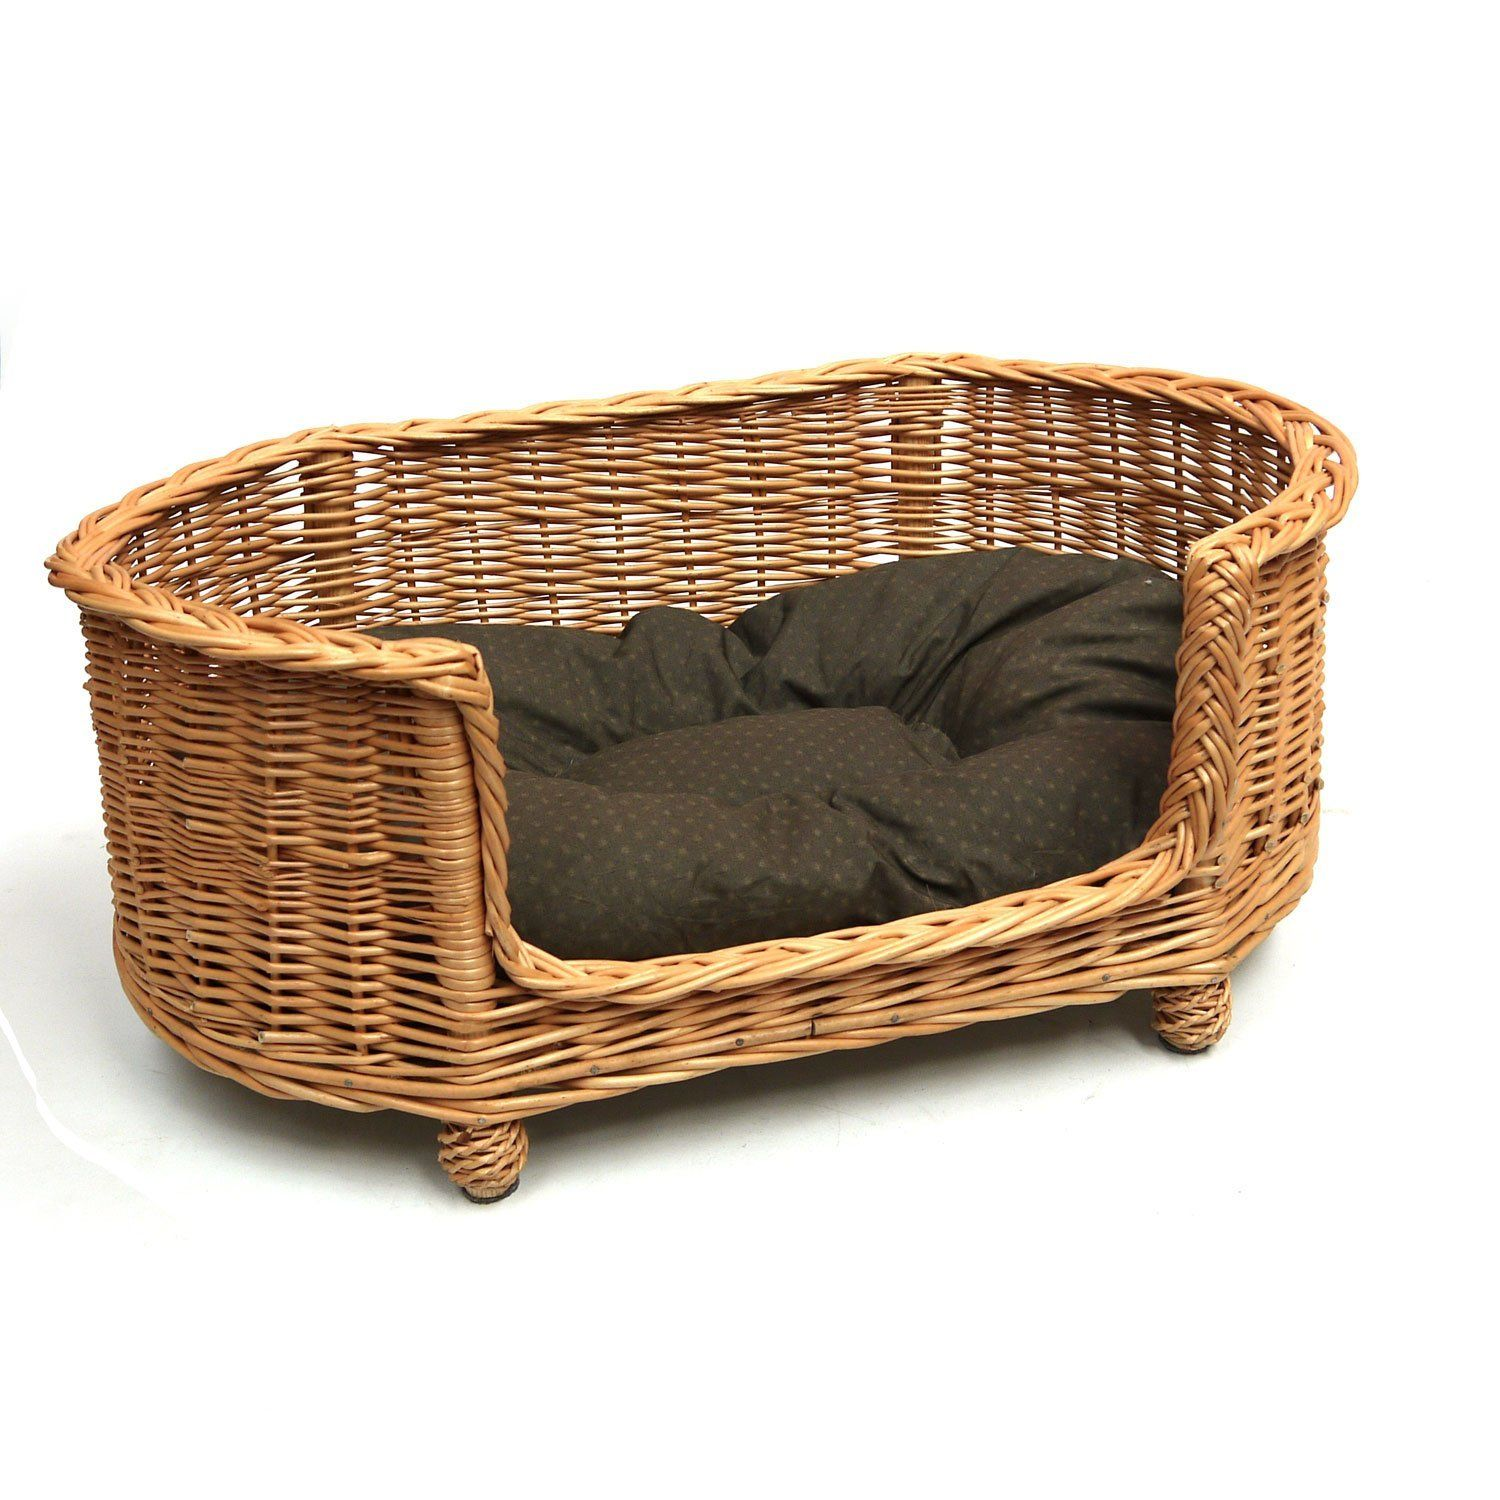 Animal Wicker Hamper Luxury Large Wicker Dog Bed Basket Settee Dog Beds That